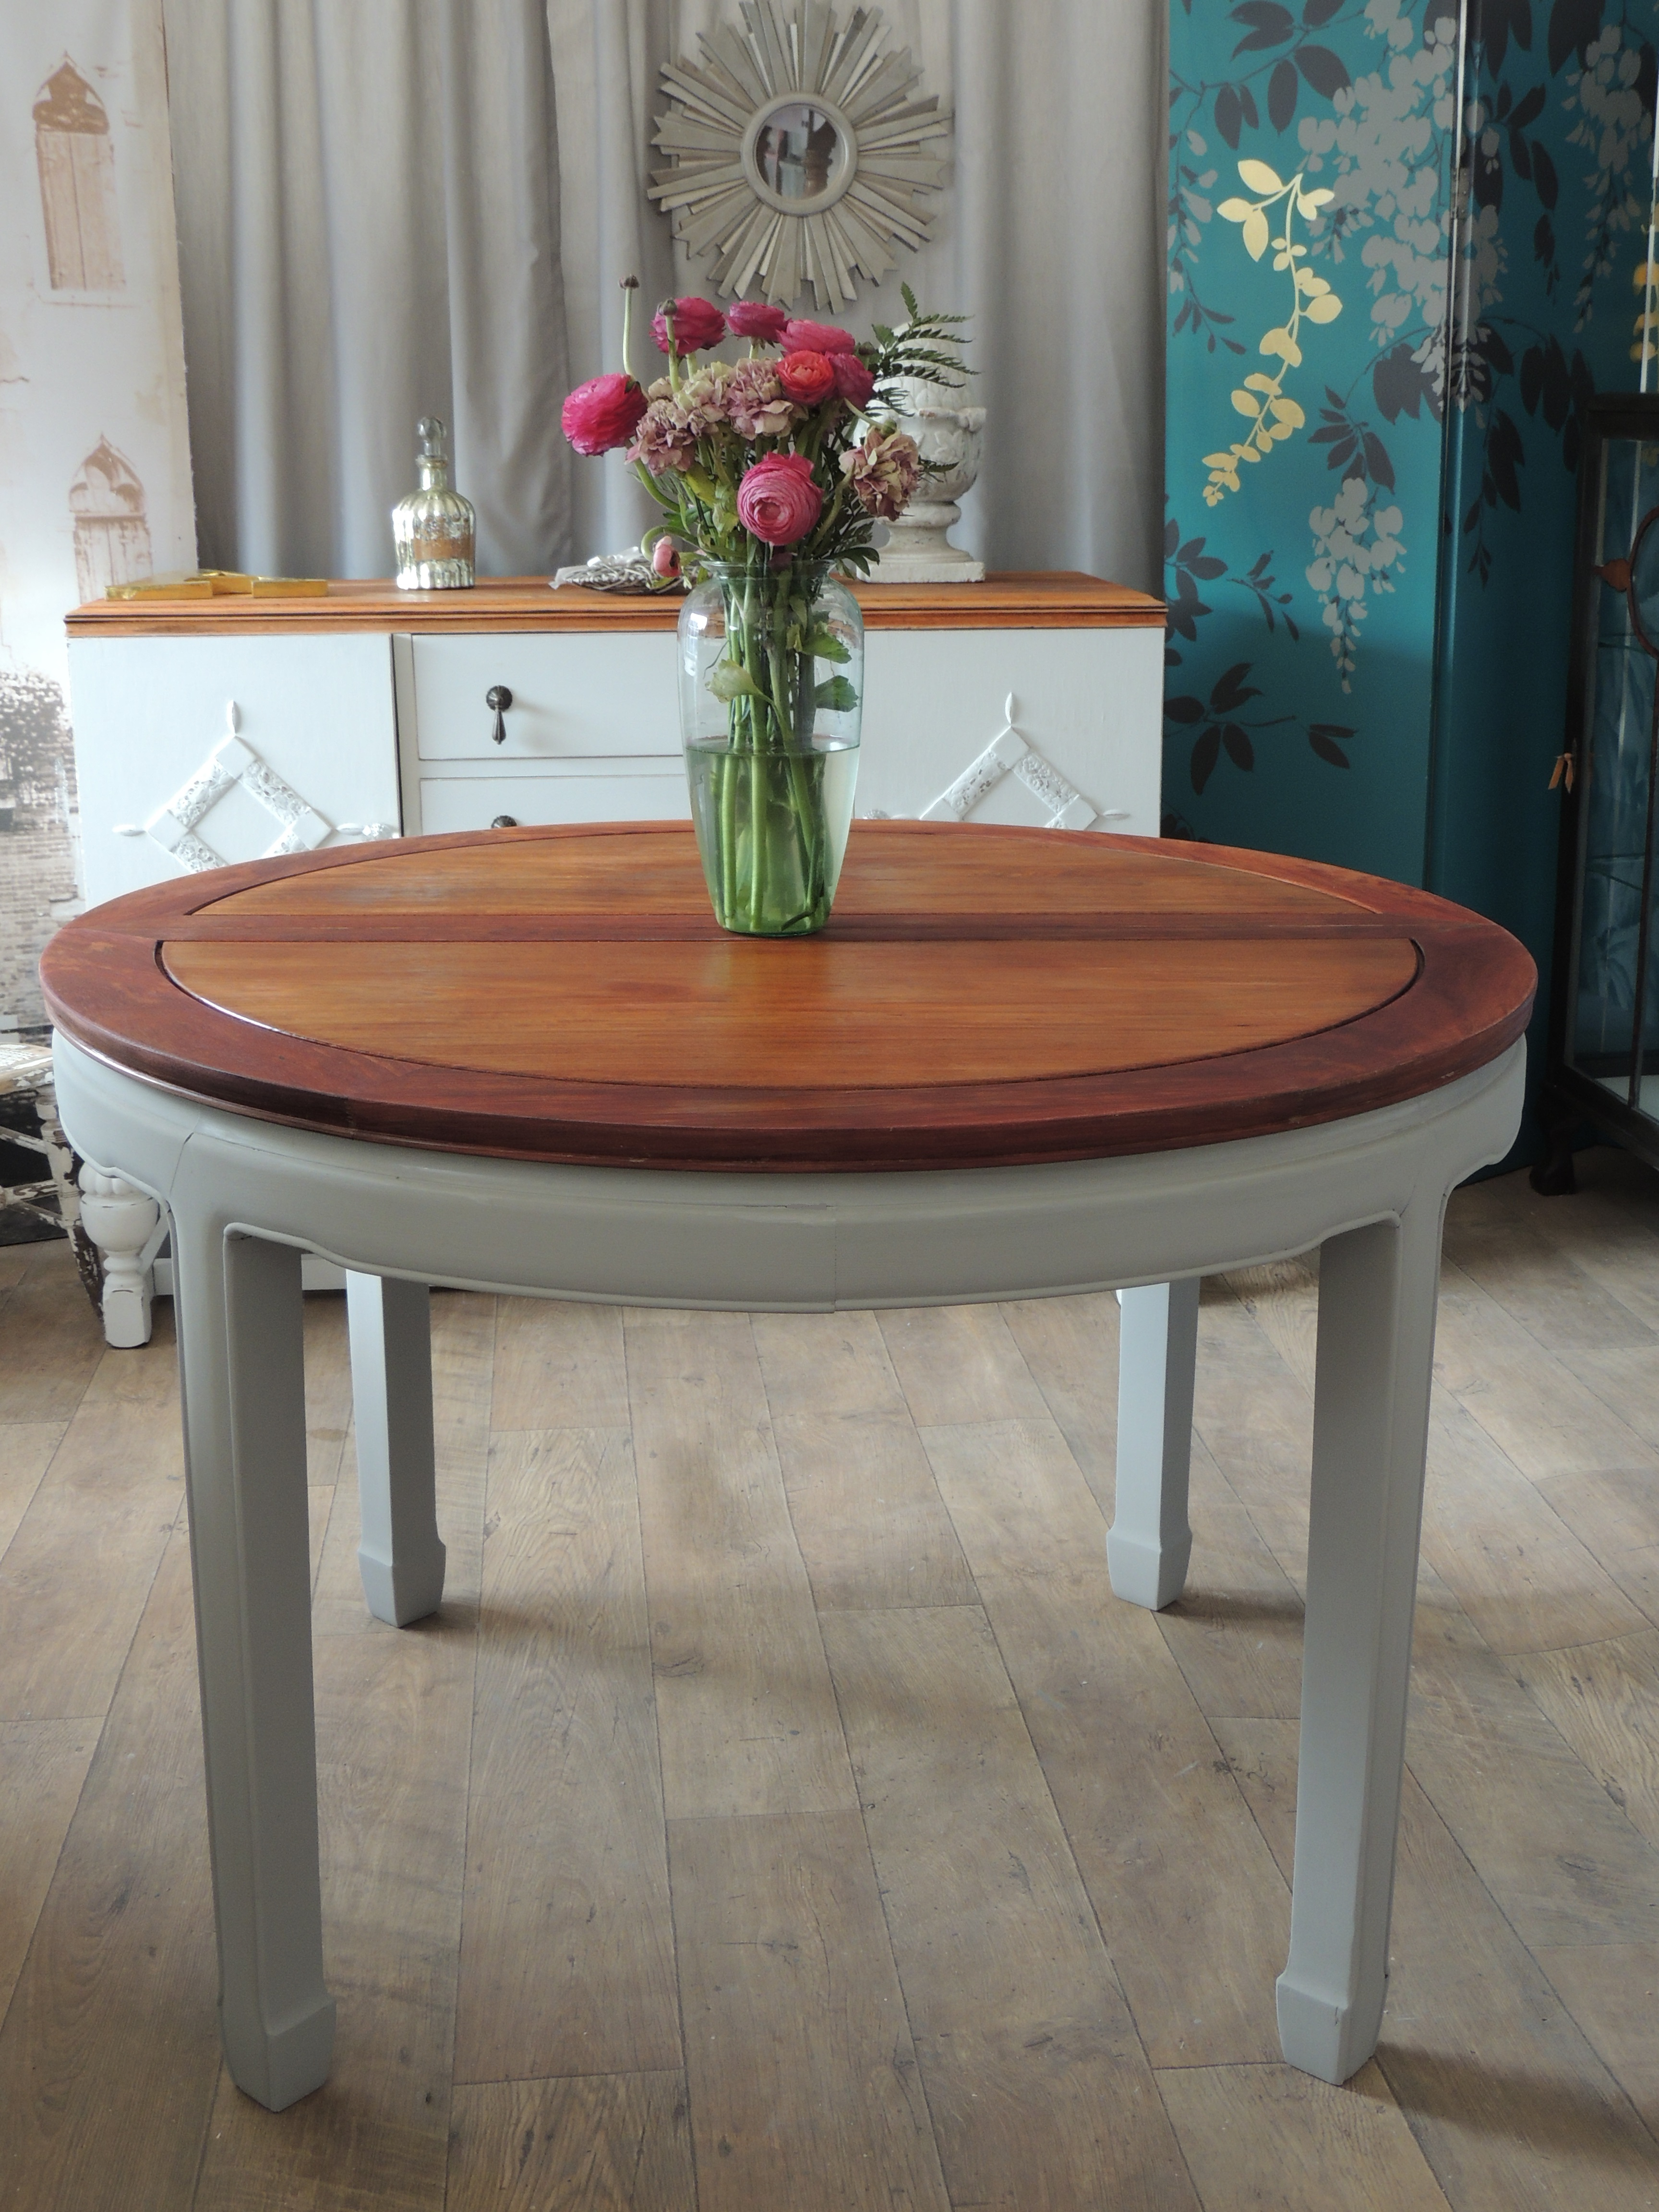 Shabby Chic Extending Dining Table For 4 8 People